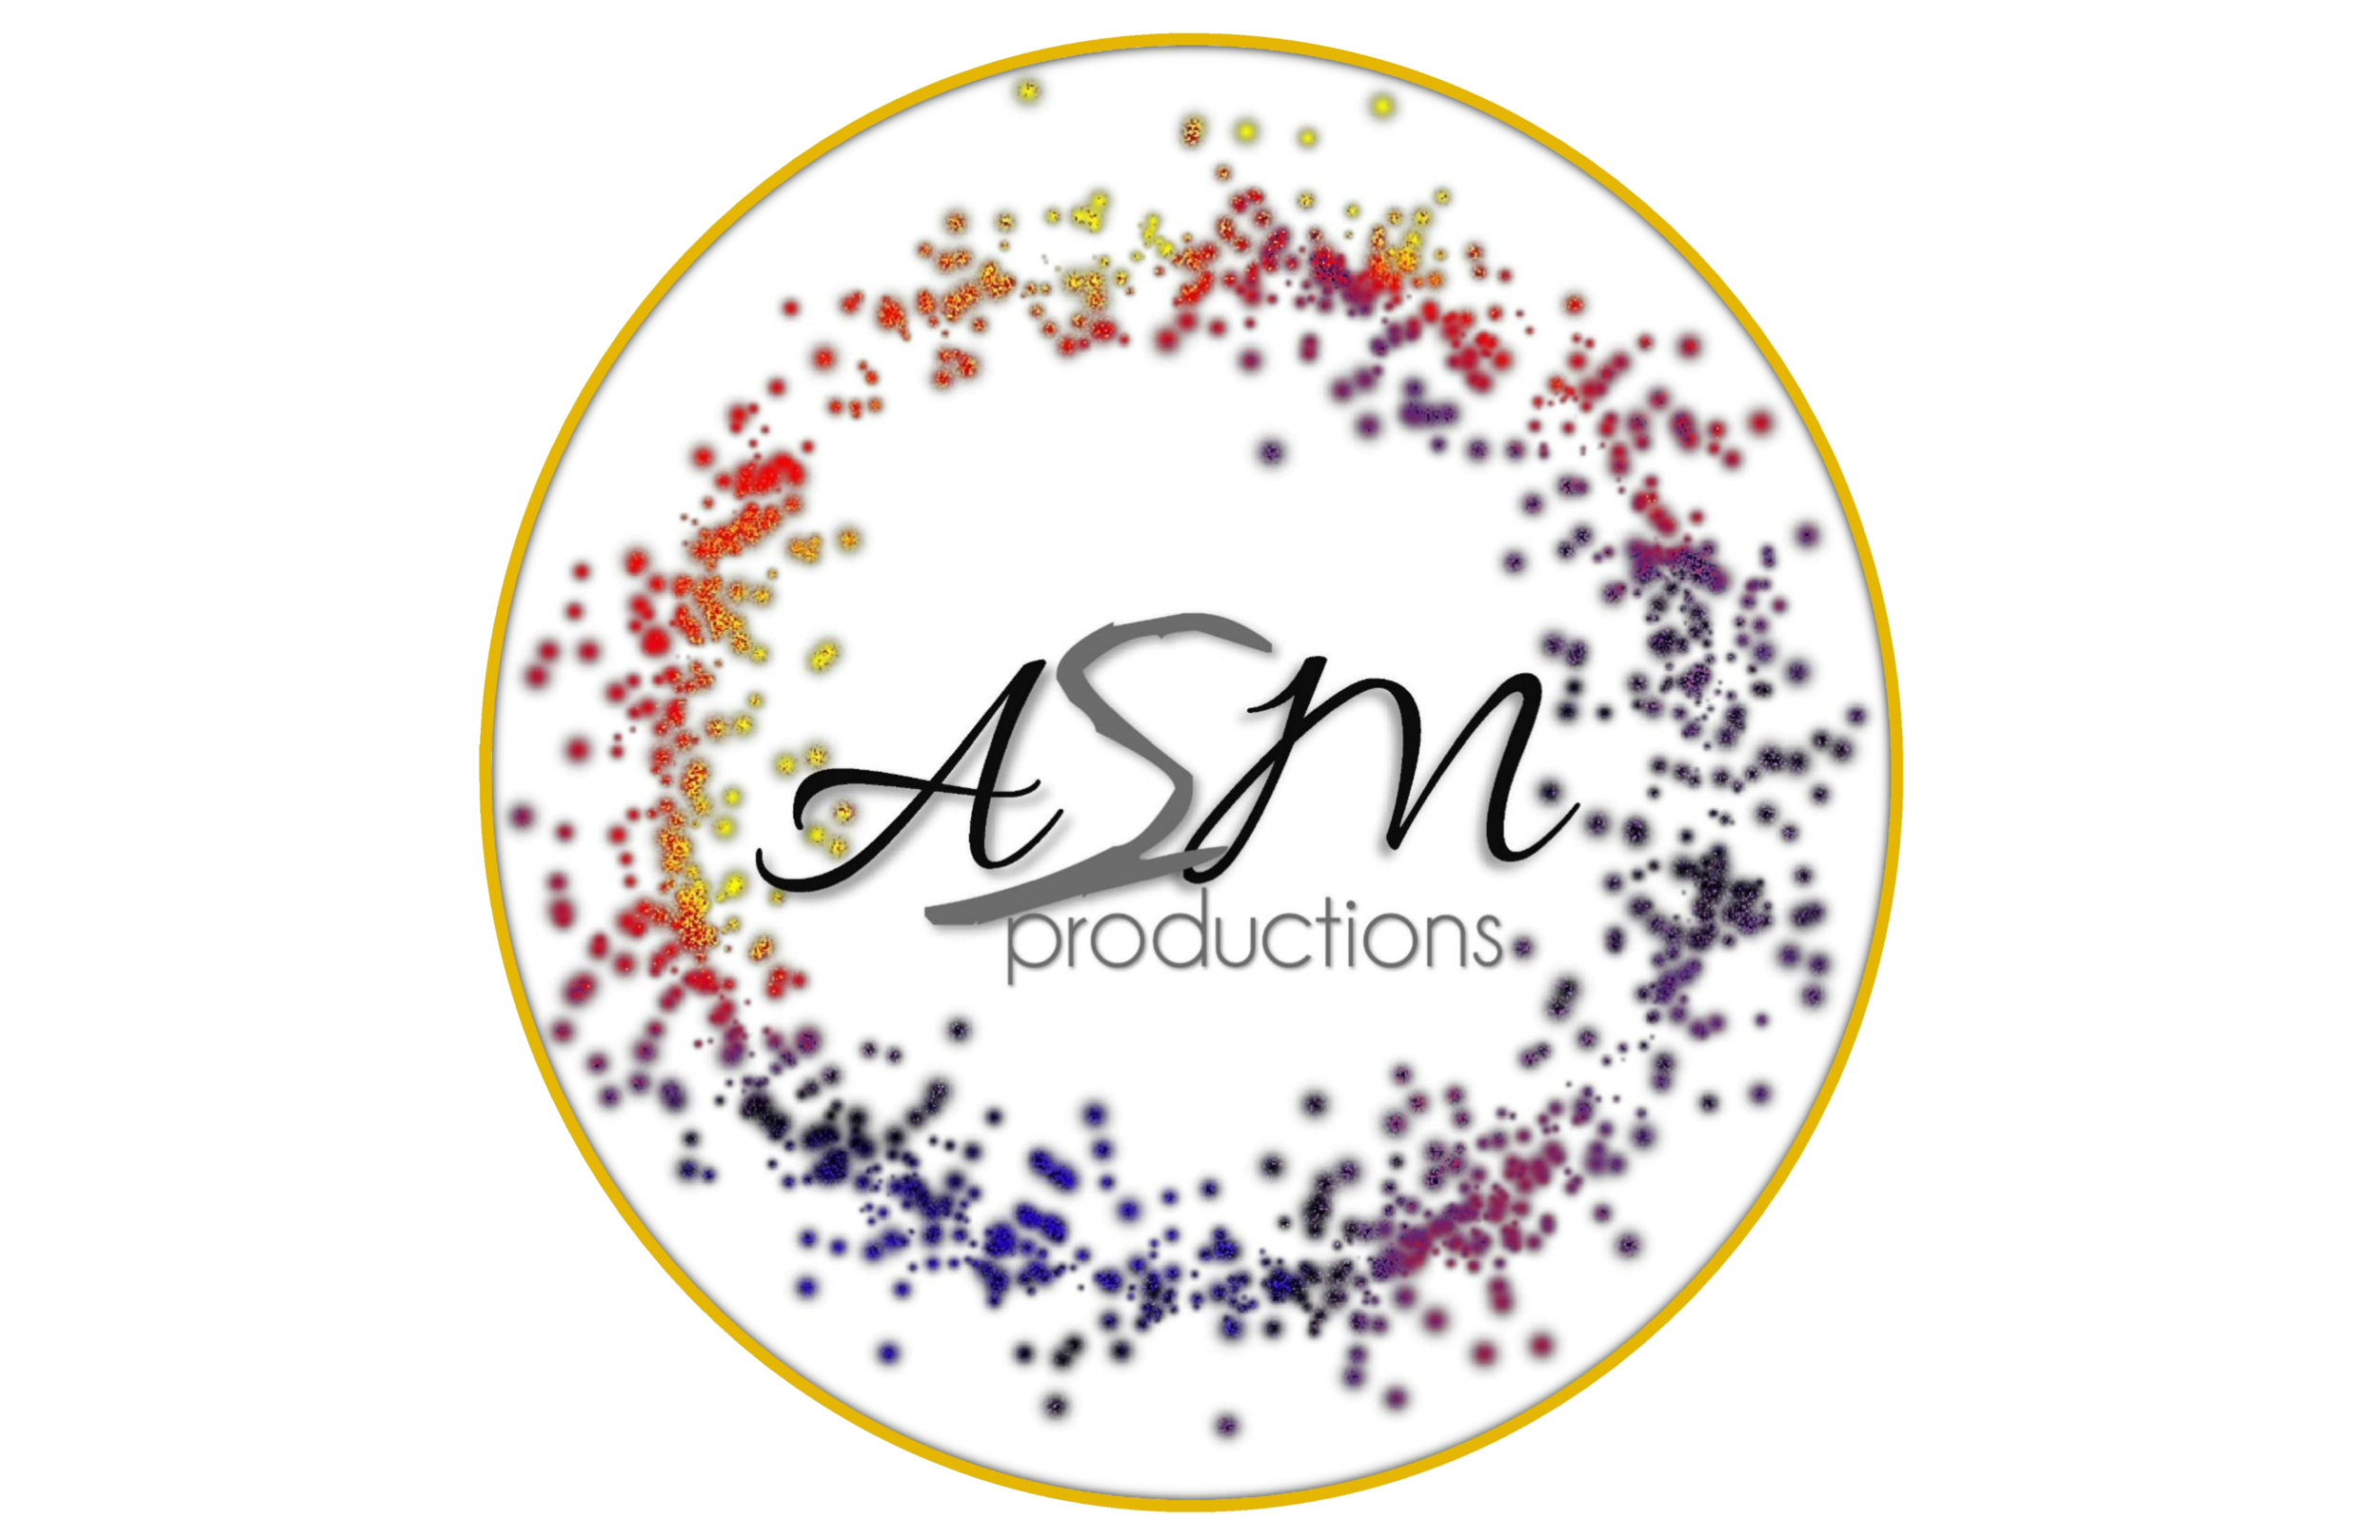 ASM Productions Logo-page-001.jpg